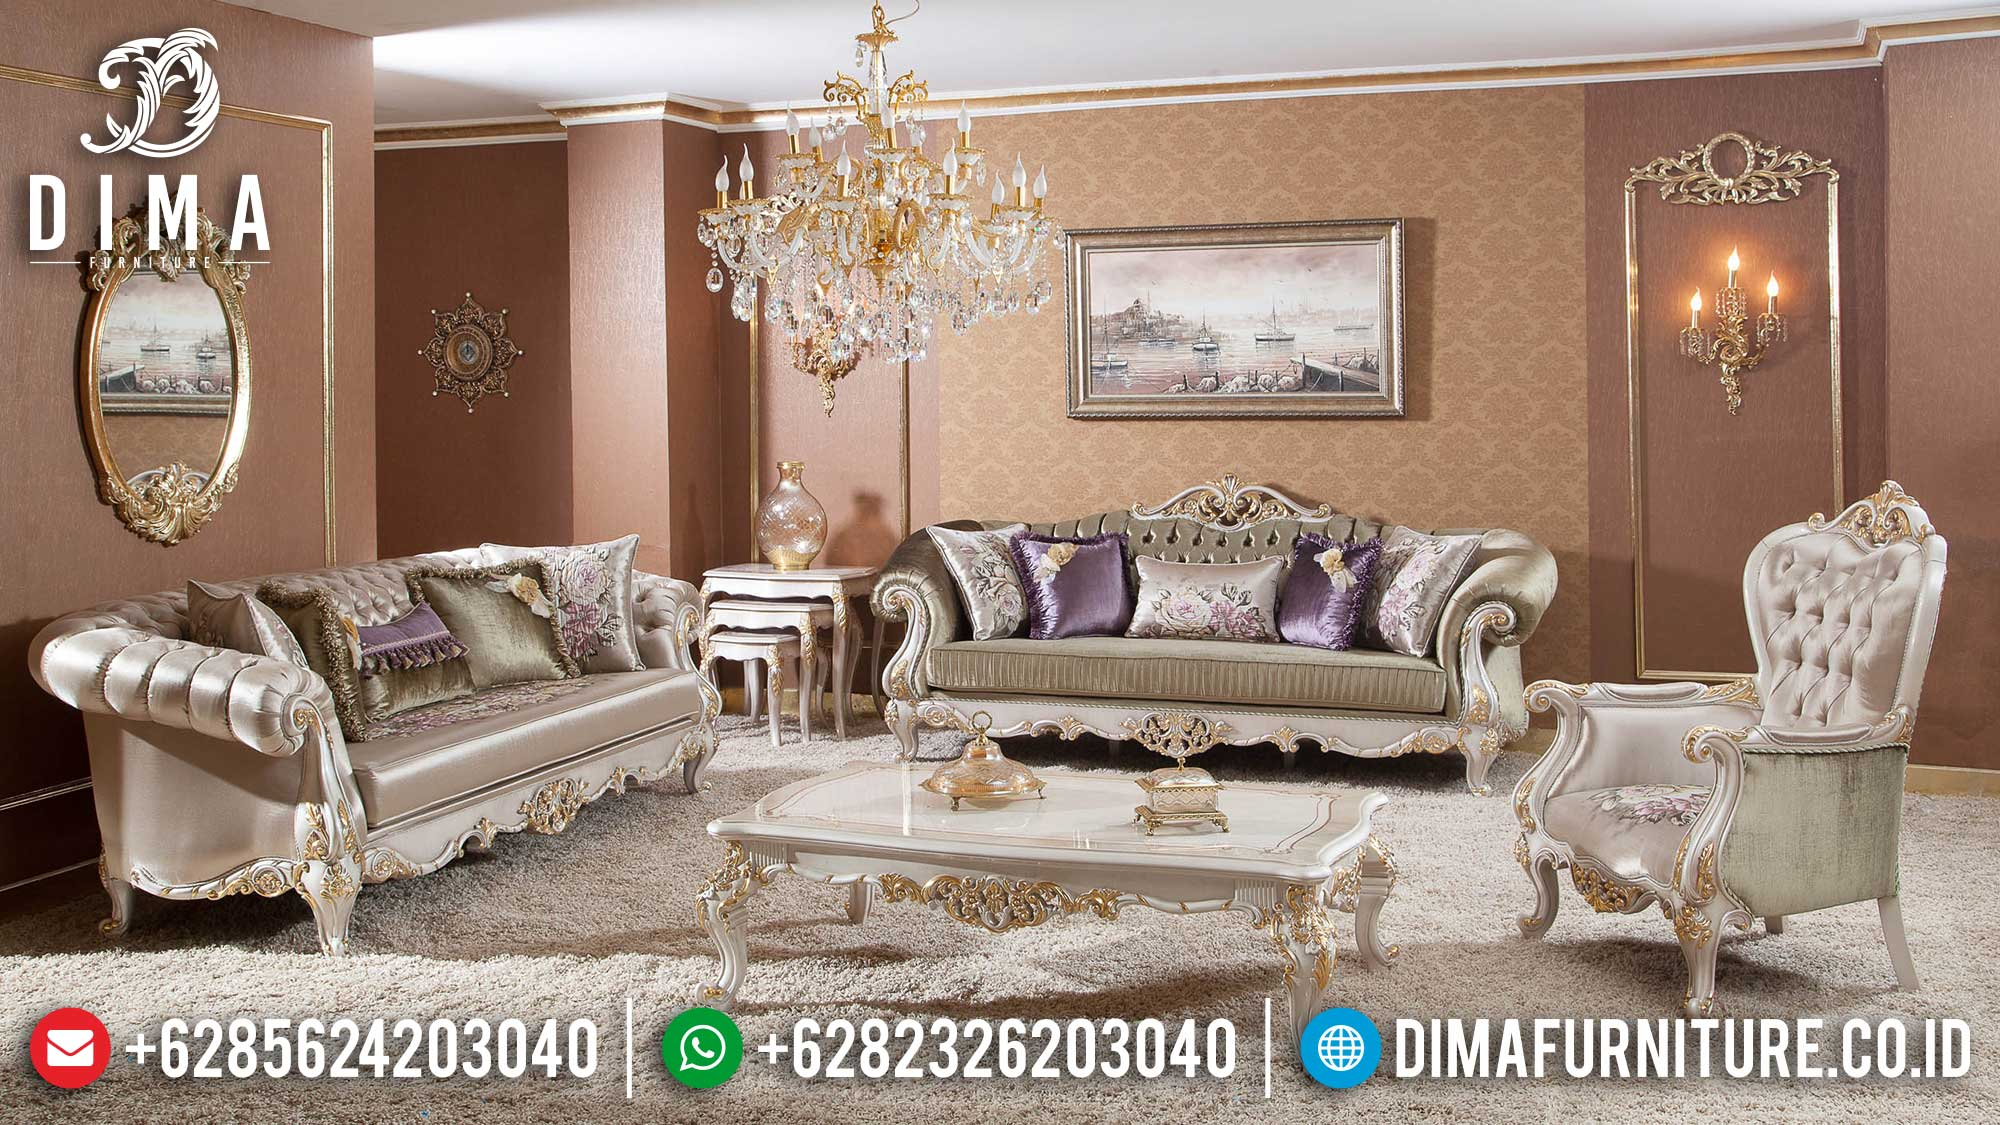 Sofa Tamu Jepara Mewah Luxury Classic Furniture Elegant Room Set TTJ-1532